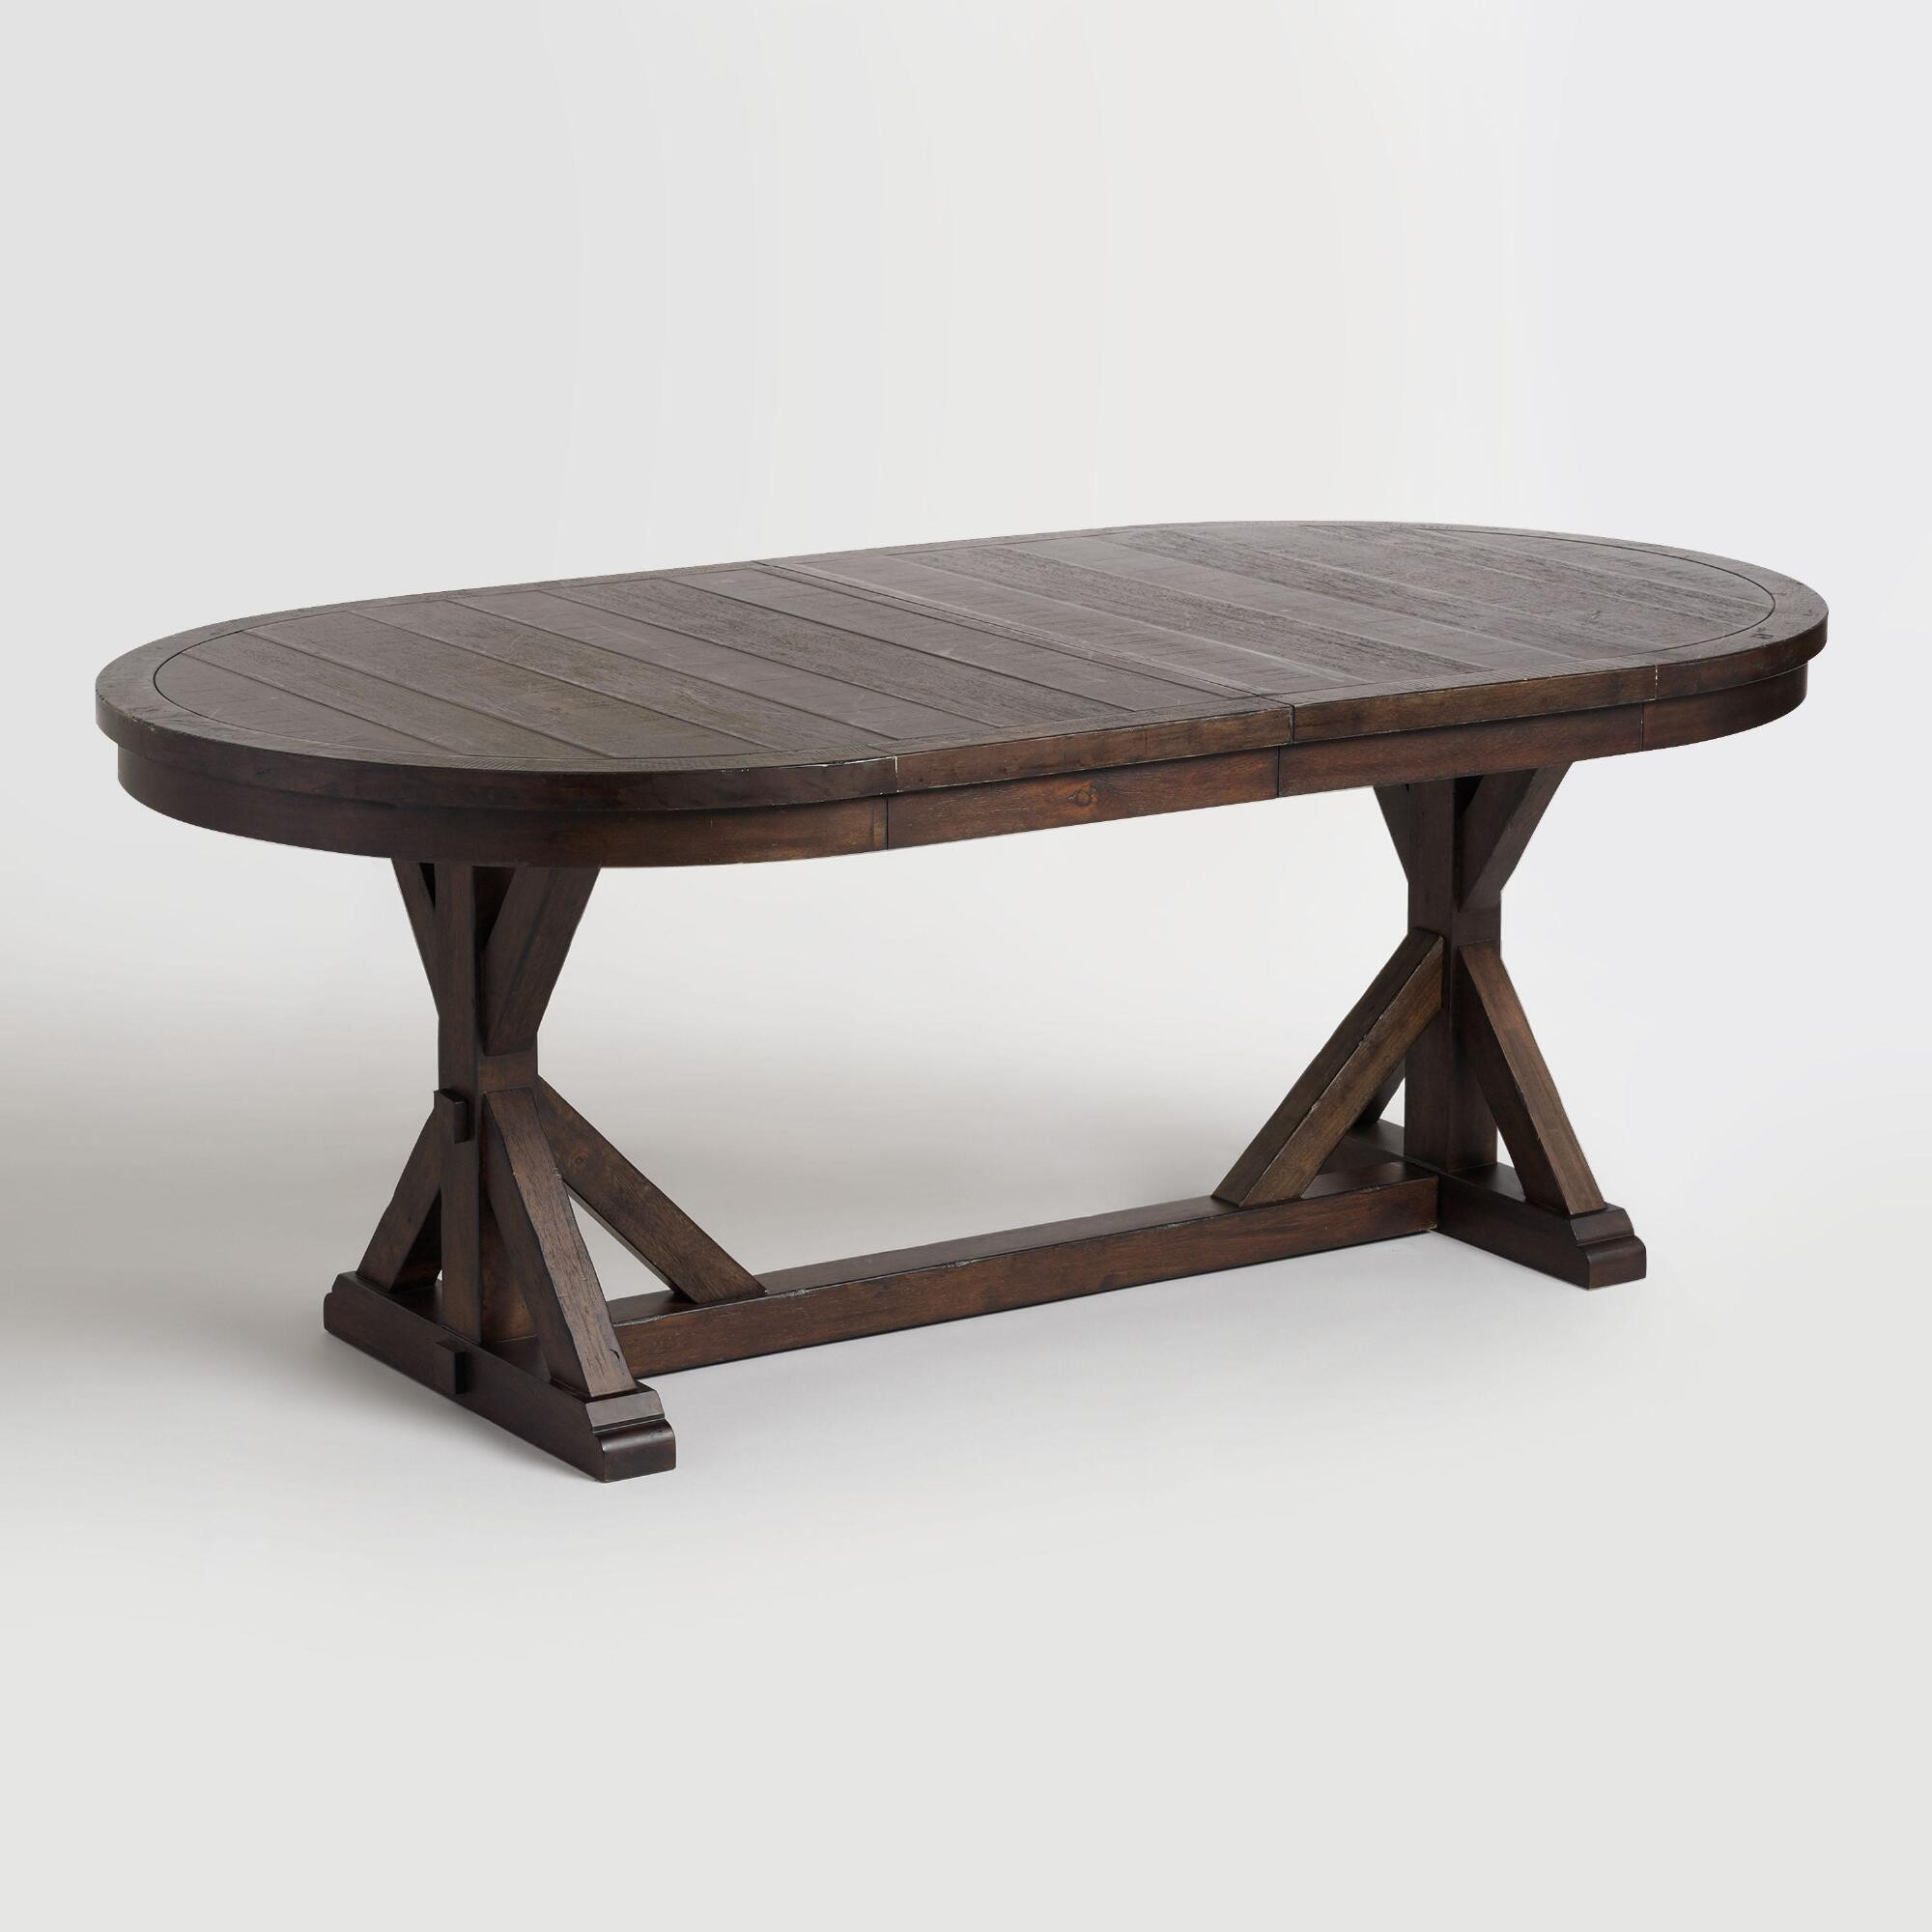 Best ideas about Oval Dining Table . Save or Pin Rustic Brown Oval Wood Brooklynn Extension Dining Table Now.